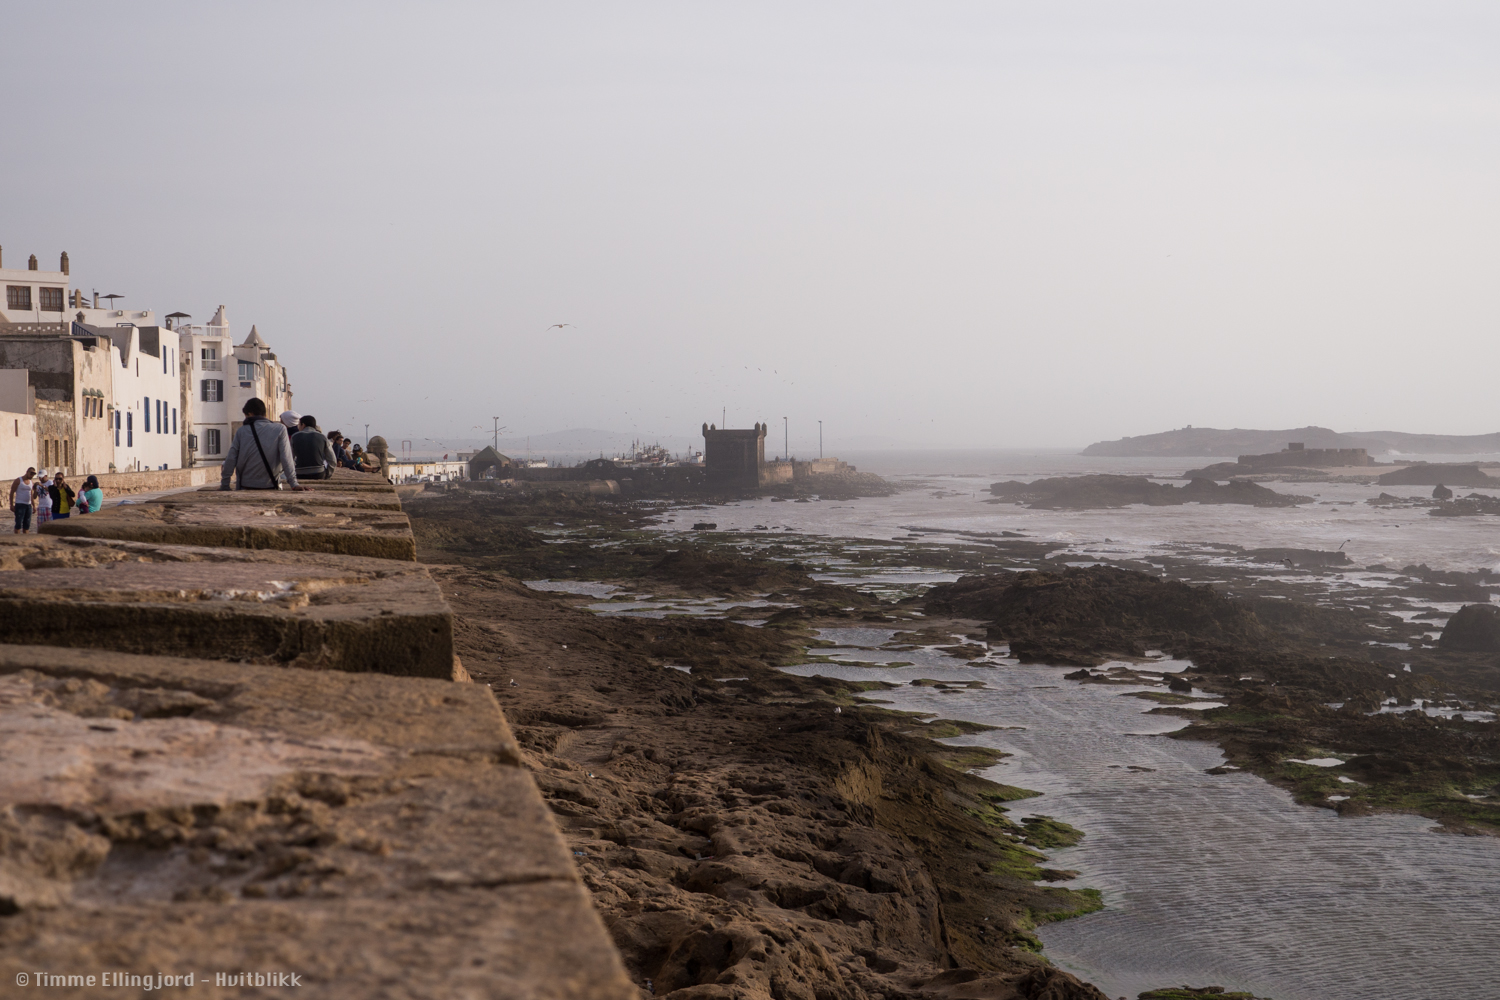 the wall of Essaouira